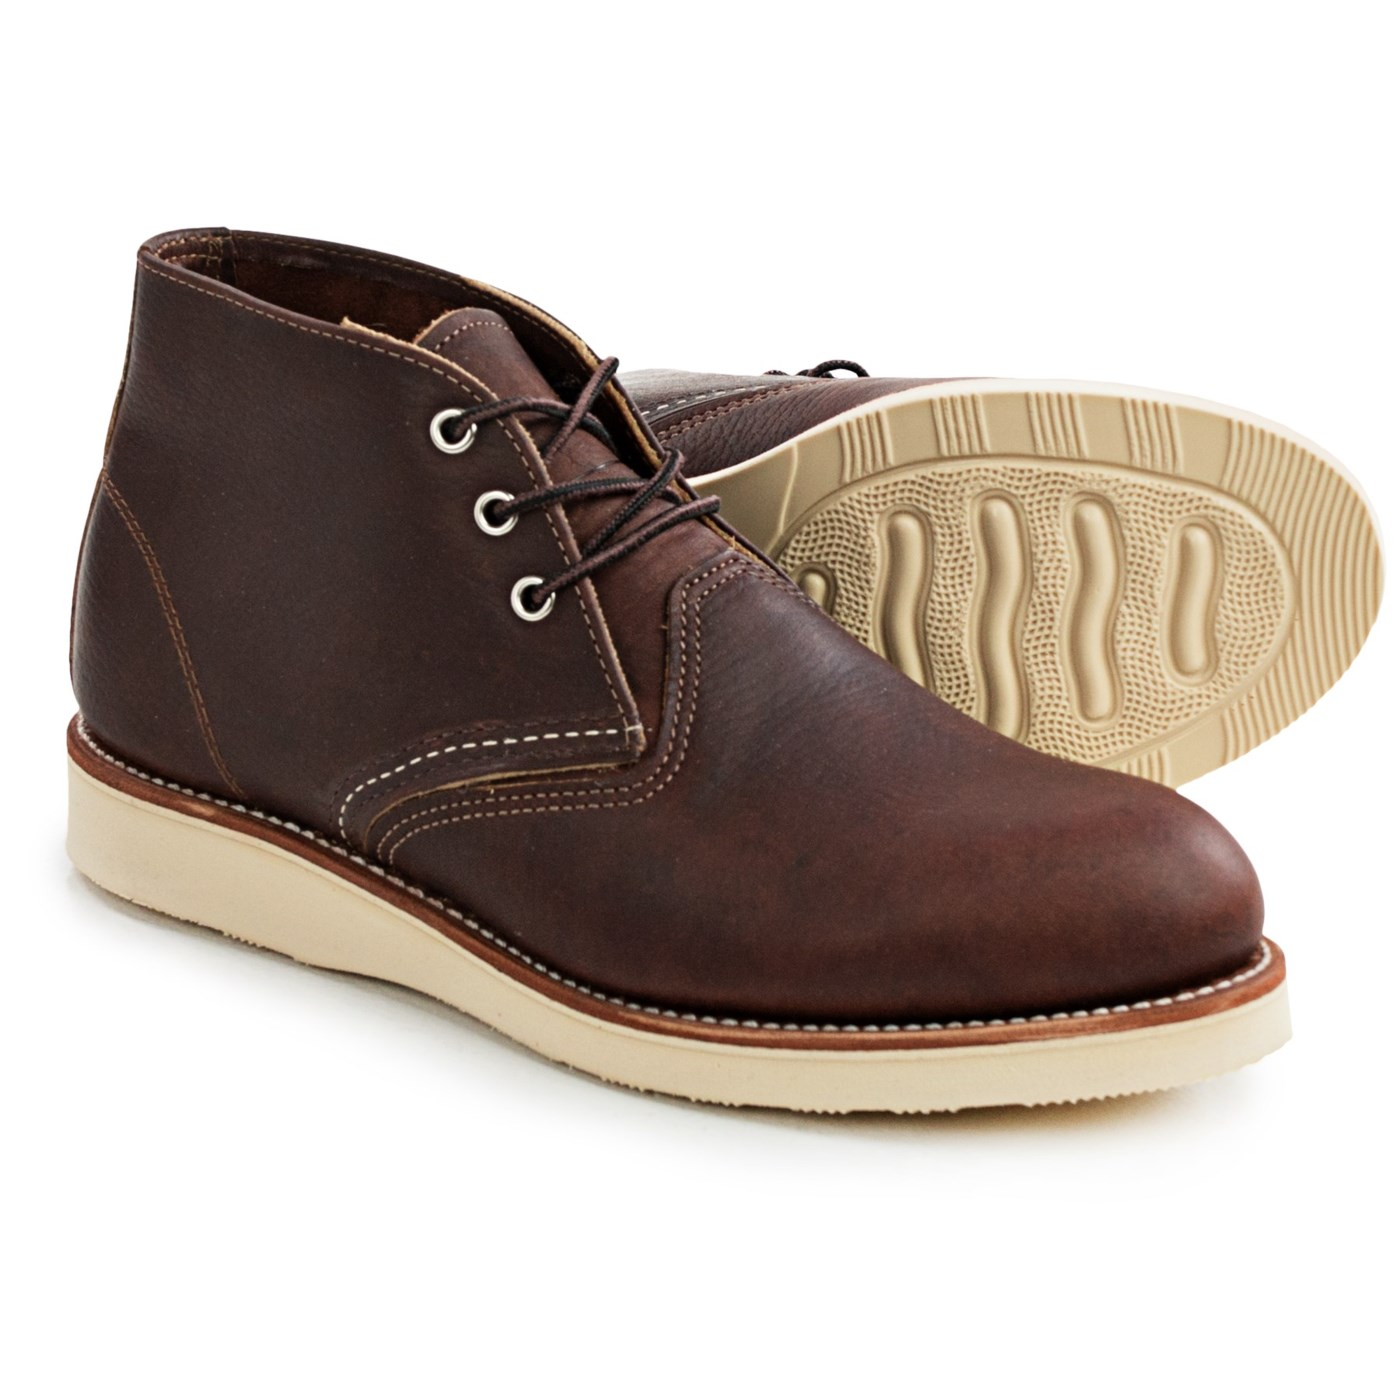 quality design 0f850 7808f red-wing-heritage-3141-classic-chukka-boots-factory-2nds-for-men-in-brown~p~151rp 01~1400.2.jpg